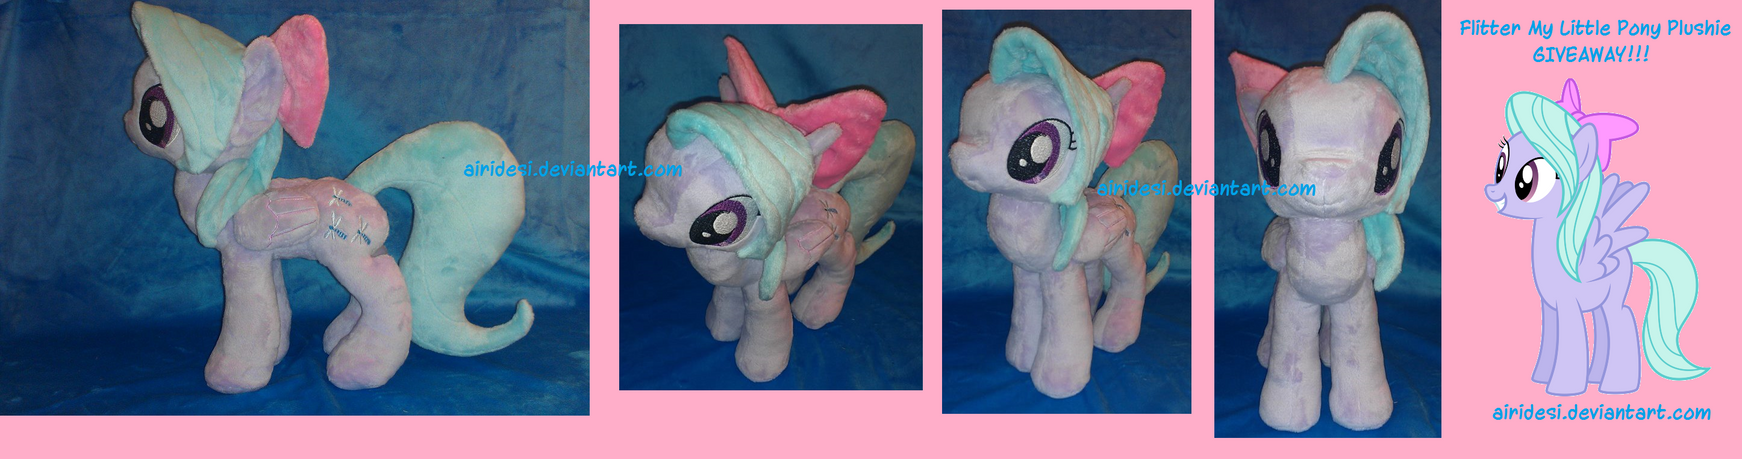 Flitter Plush Giveaway!!! by Airidesi